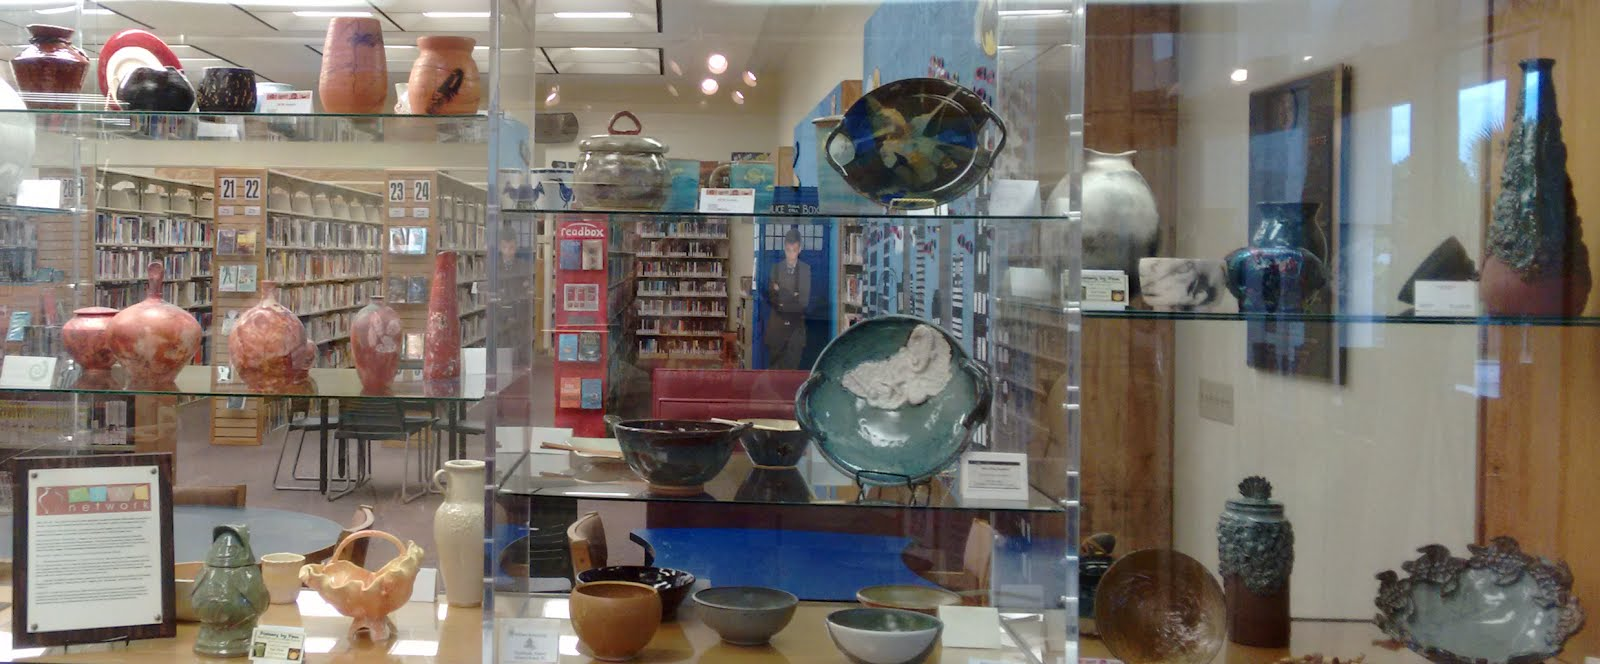 Clay Network library display